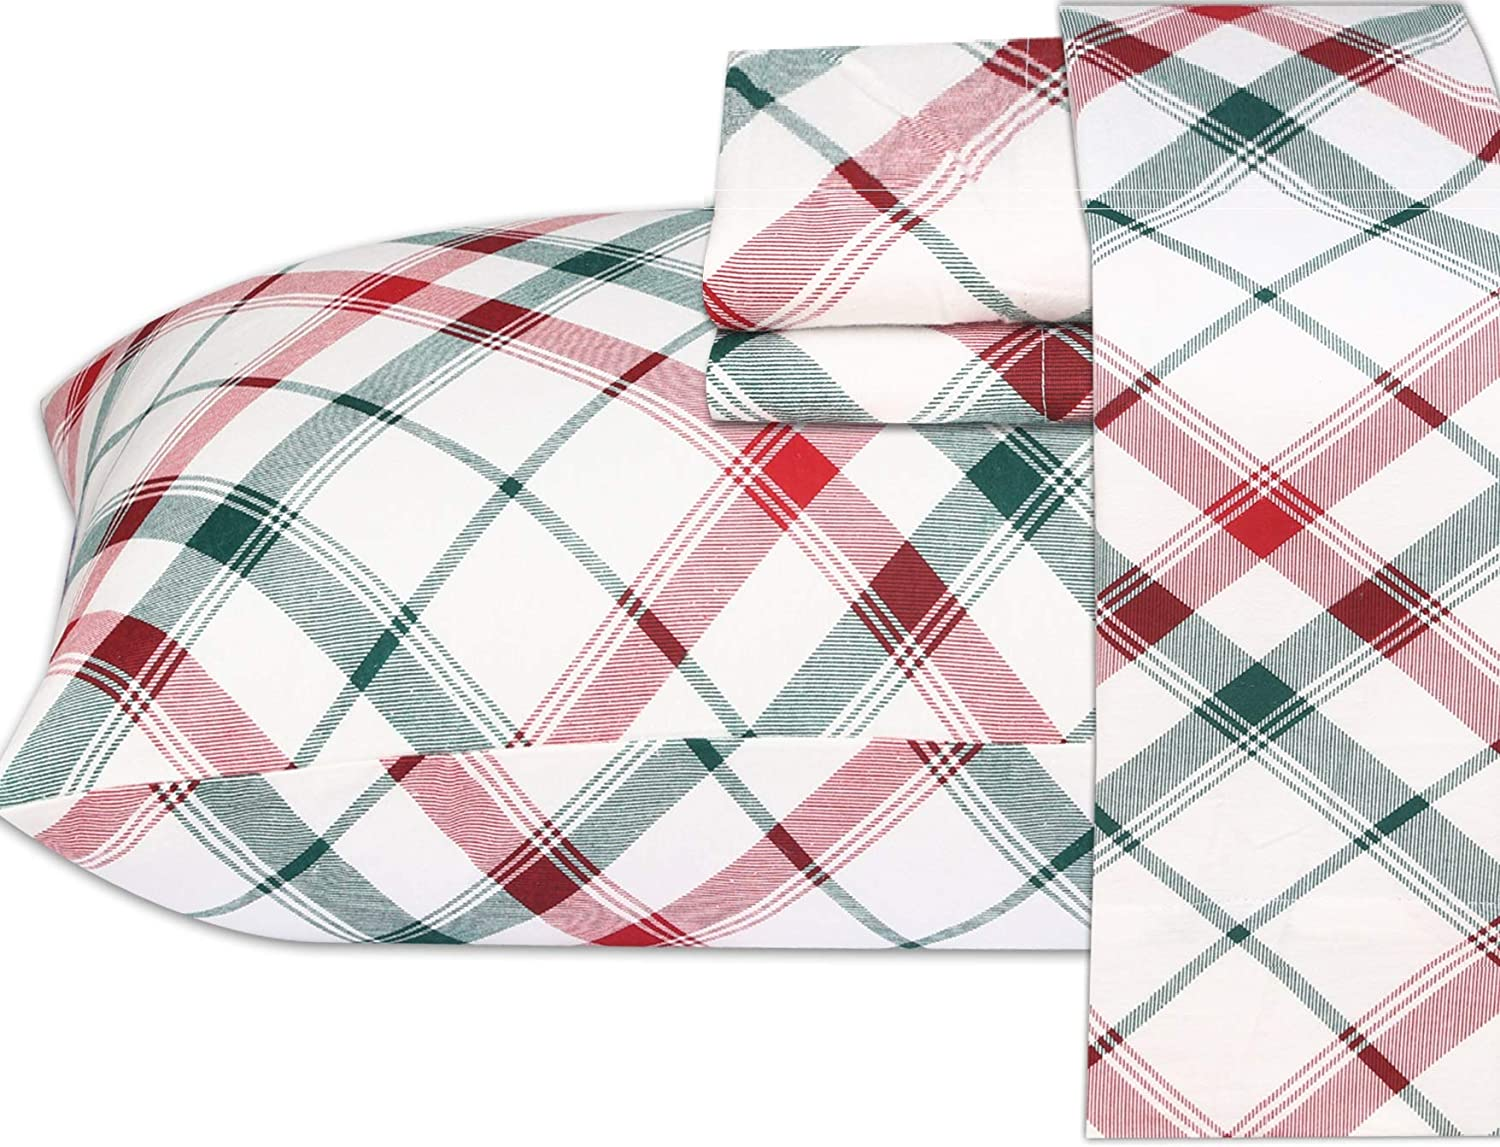 Ruvanti 100% Cotton 4 Pcs Flannel Sheets Queen, Red & Green Cross Plaid,Deep Pocket-Warm-Super Soft-Breathable Moisture Wicking Flannel Bed Sheet Set Include Flat Sheet, Fitted Sheet 2 Pillowcases